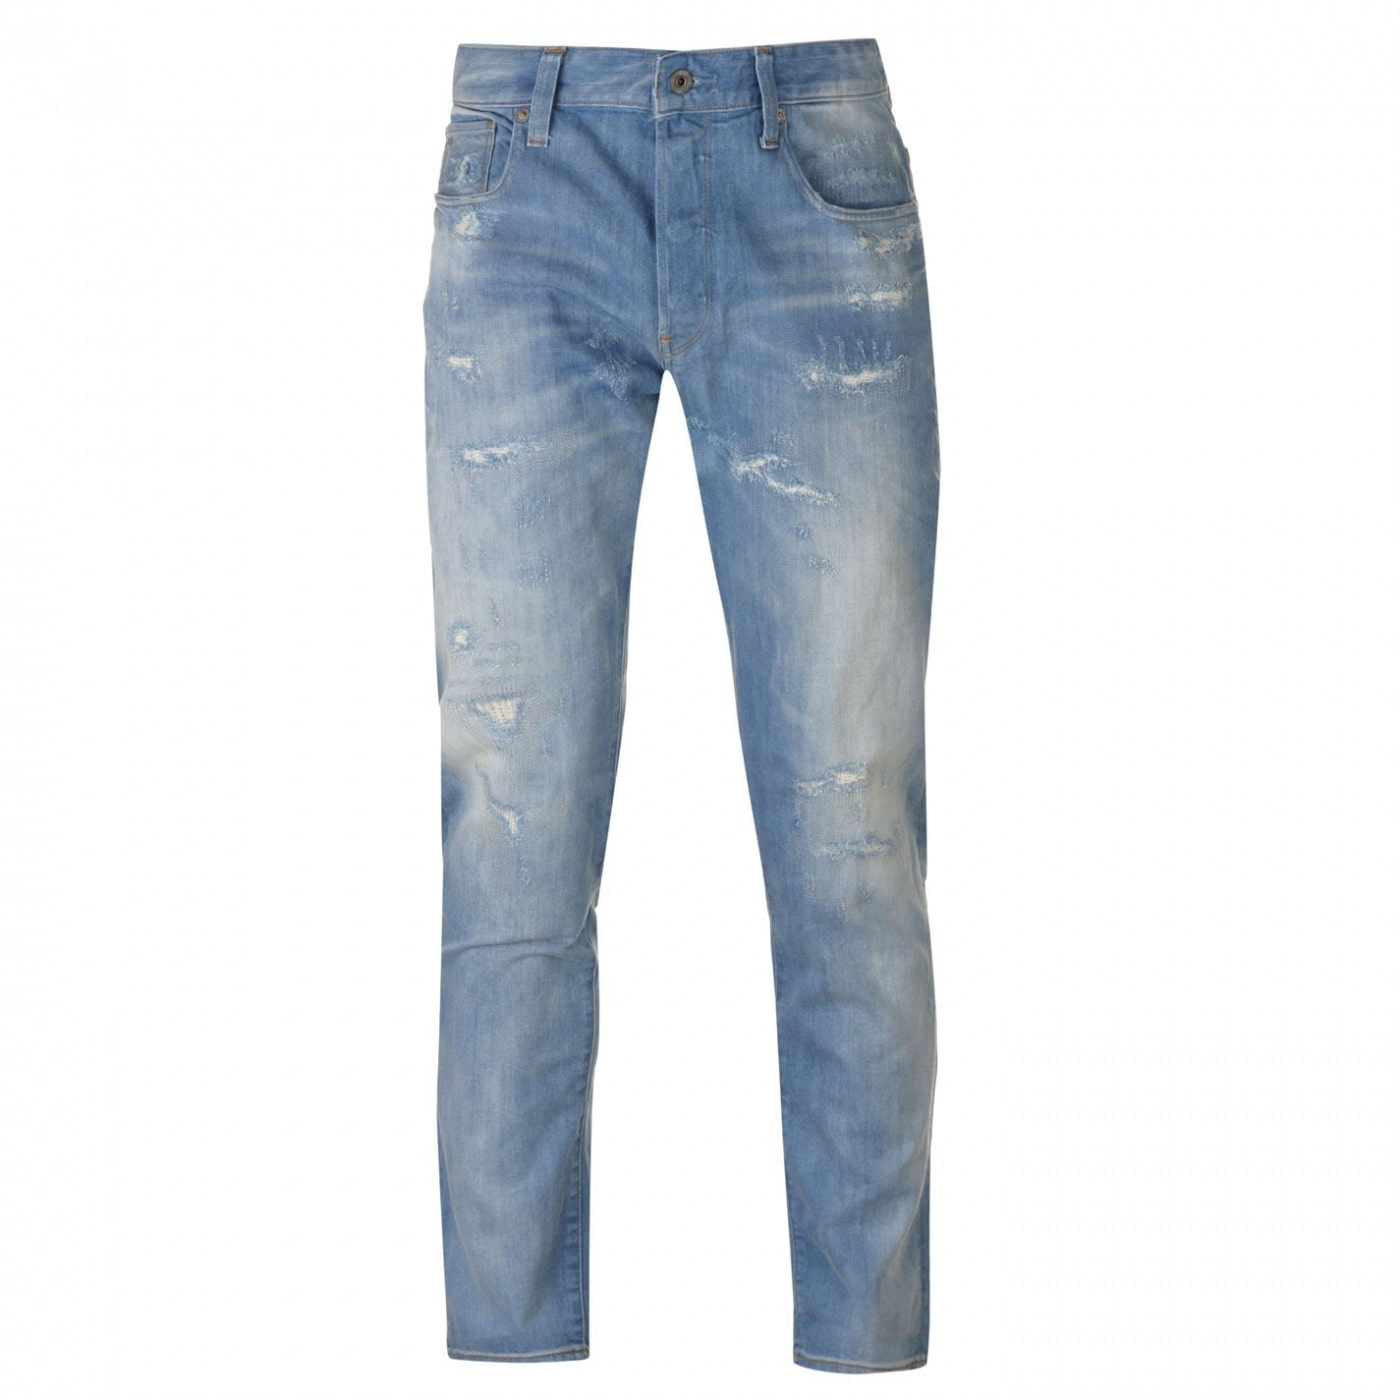 G Star 51003 Tapered Jeans